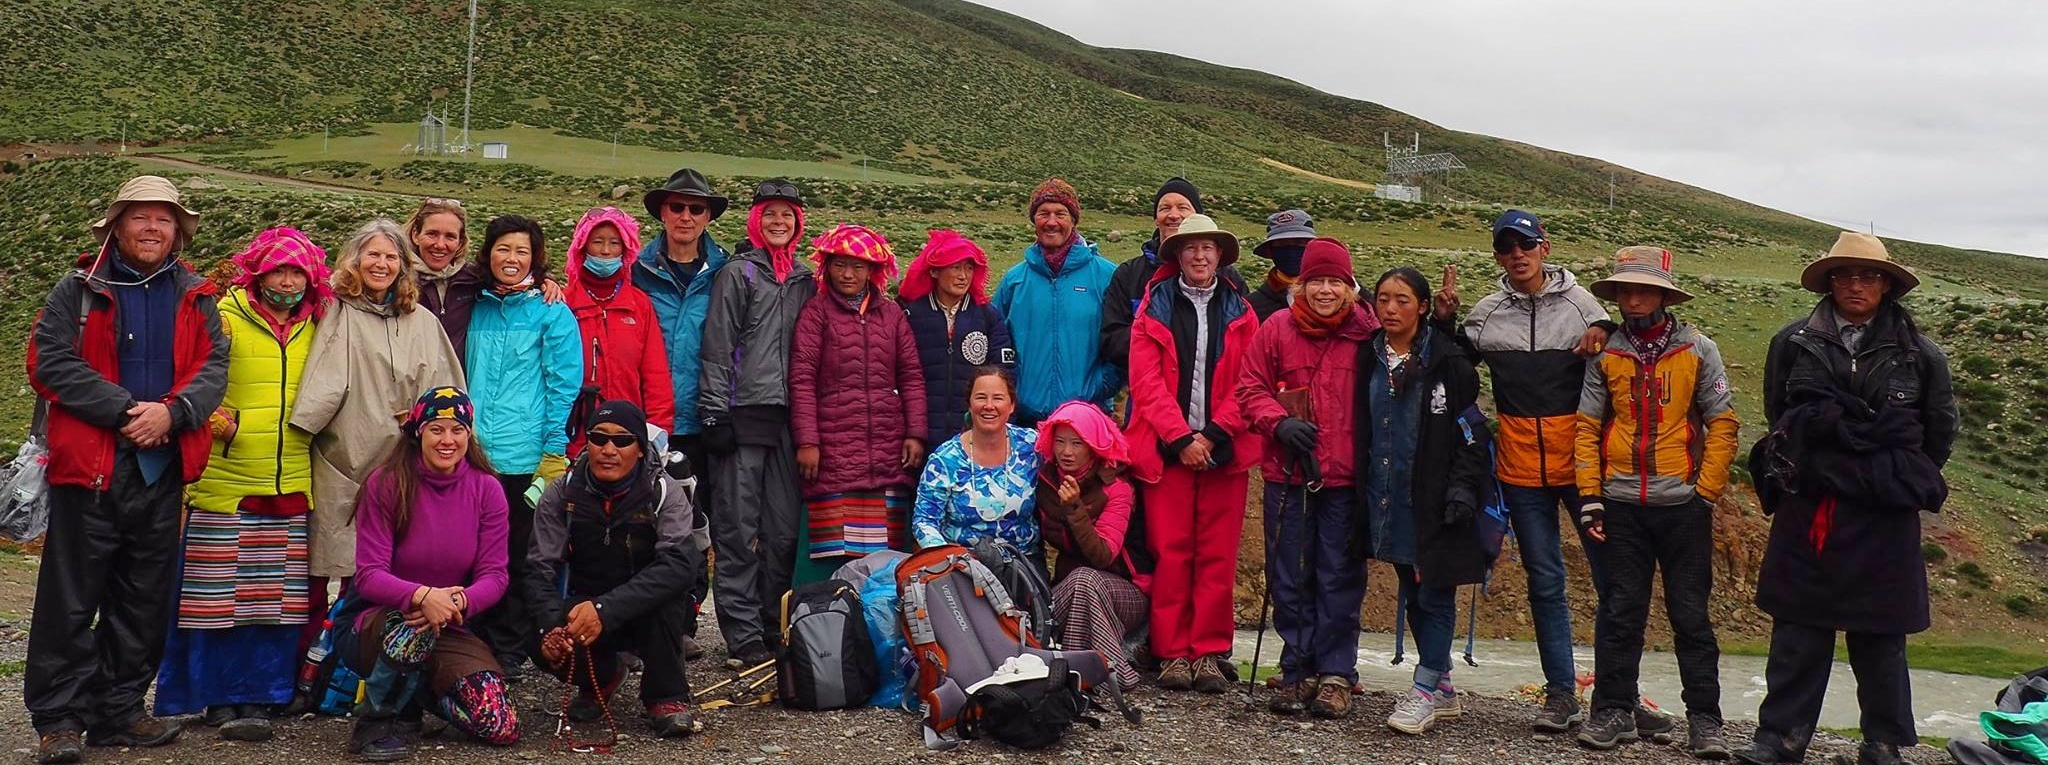 We made it! Our 2017 group, after the 3 day Mt. Kailash circuit. Photo Laura Marchelya.